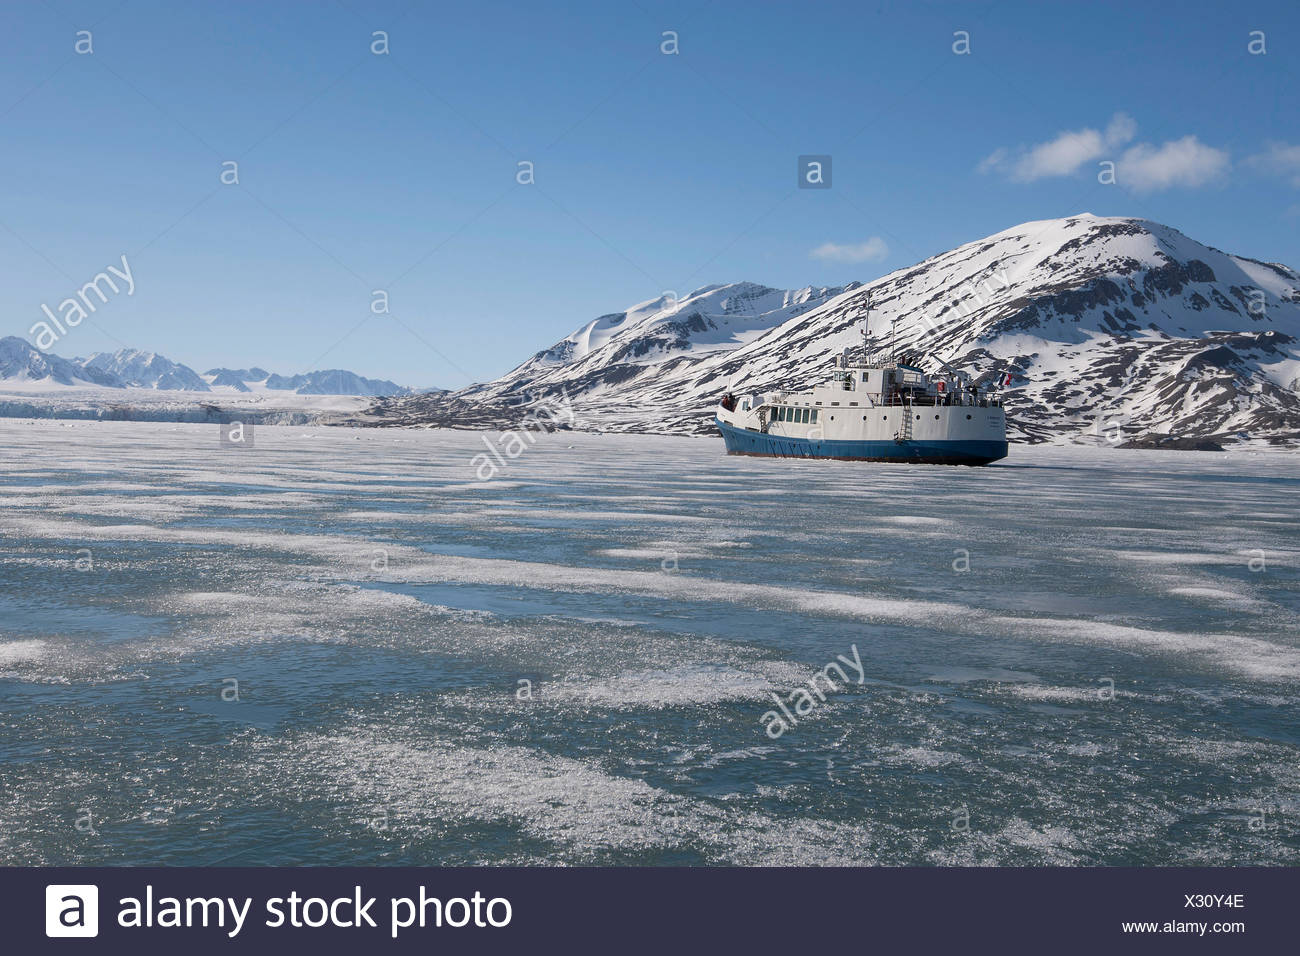 'Polaris 1' passenger vessel, entering winter fast ice in Liefdefjorden, Spitsbergen, Svalbard, 2013. All non-editorial uses must be cleared individually. - Stock Image